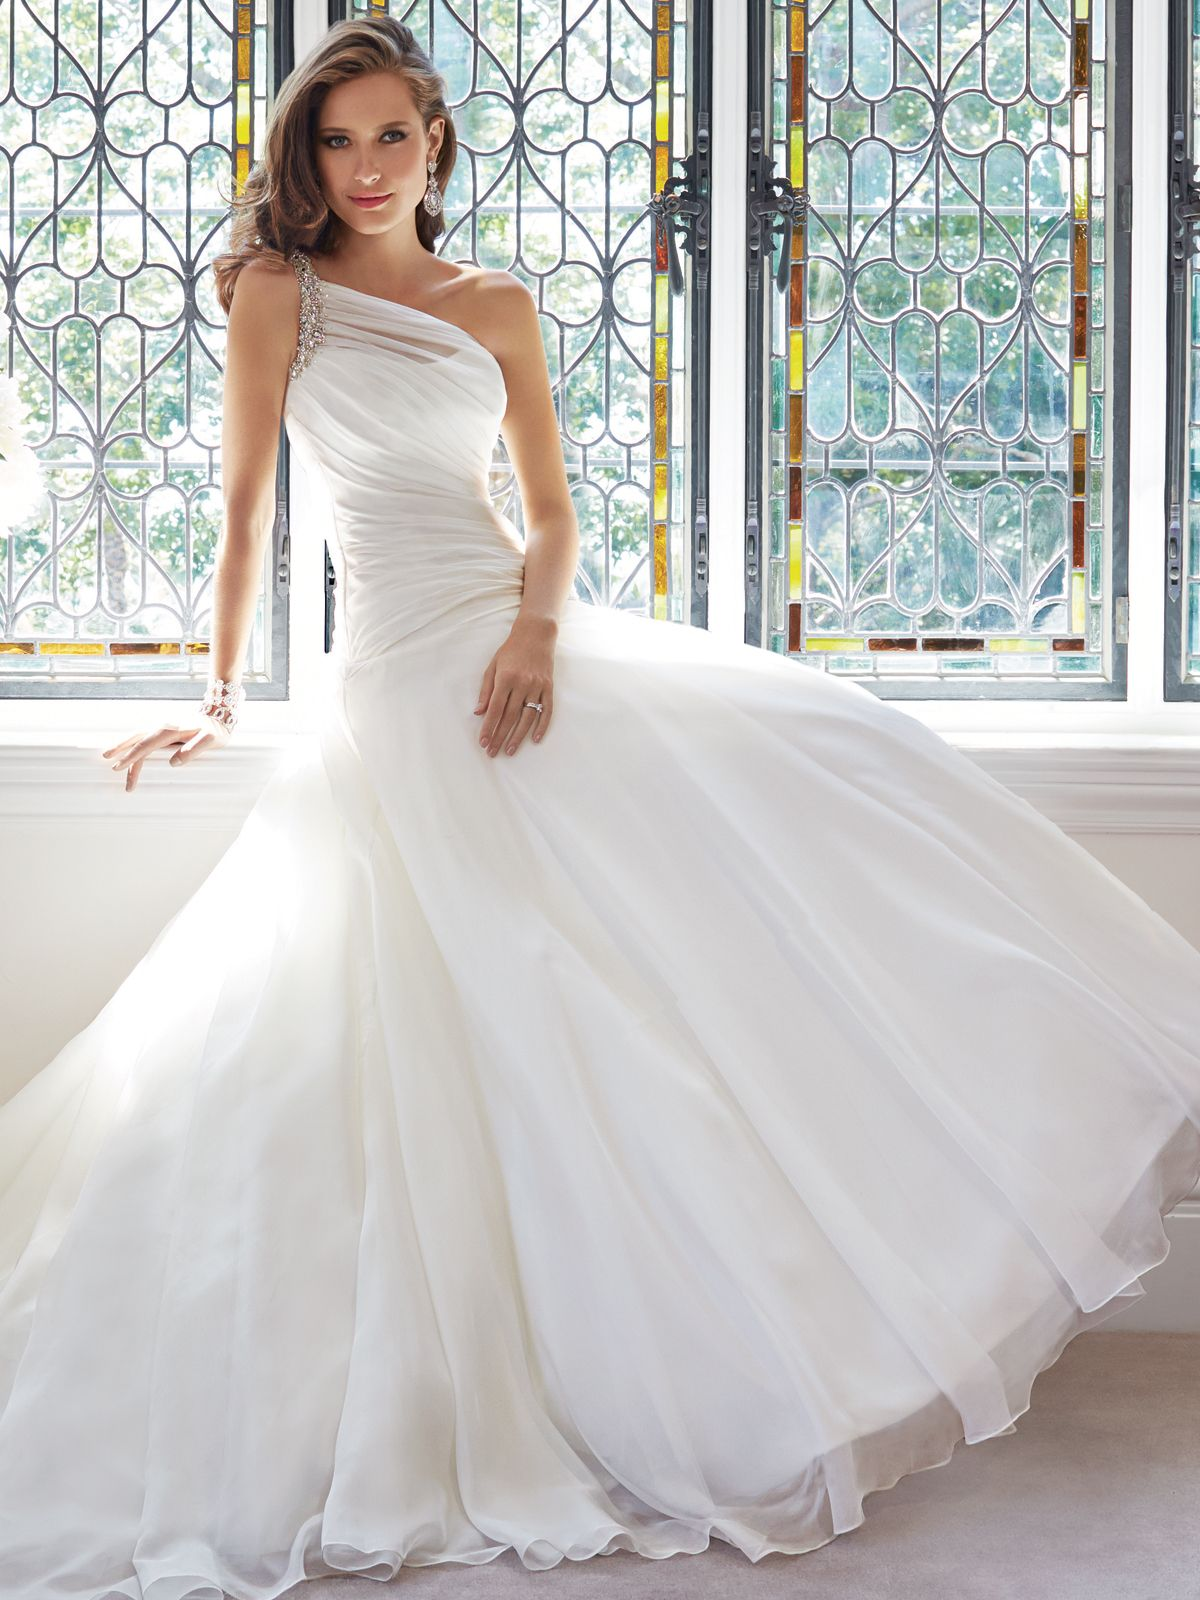 Simple Sophia Tolli Fall Bridal Collection I don ut like the gems but